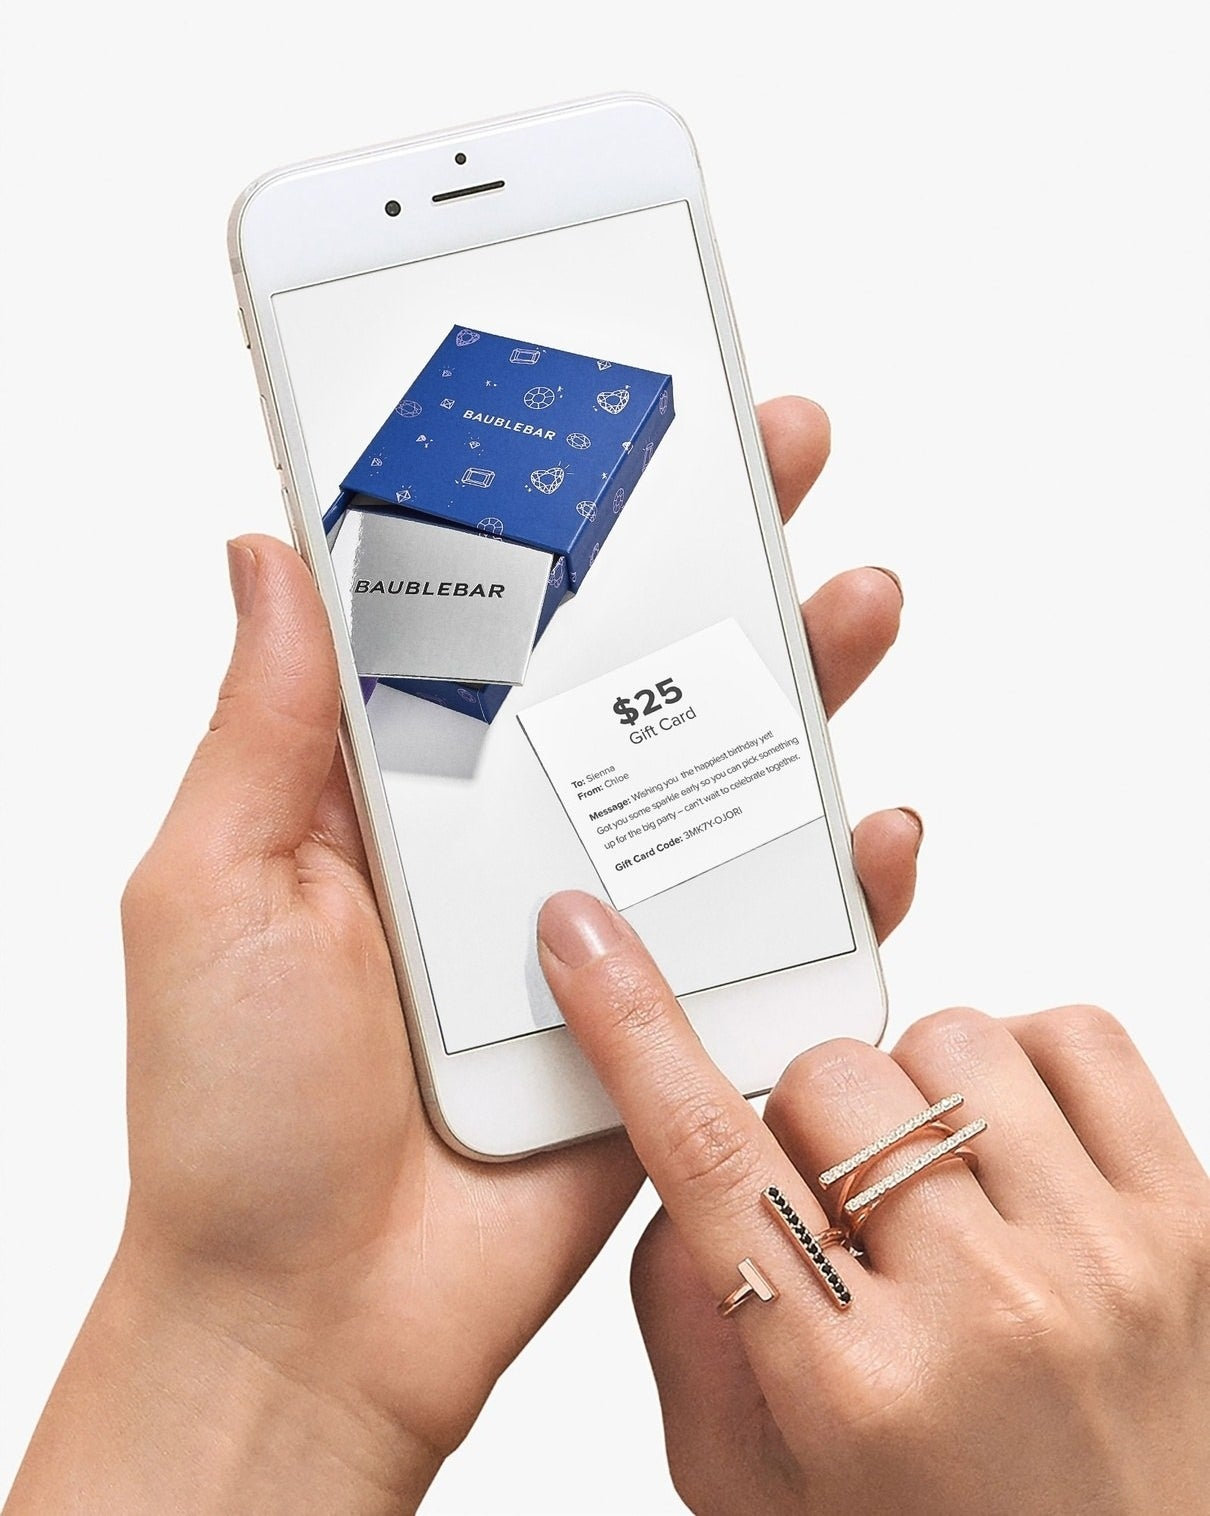 A hand using their smartphone to open a BaubleBar e-gift card